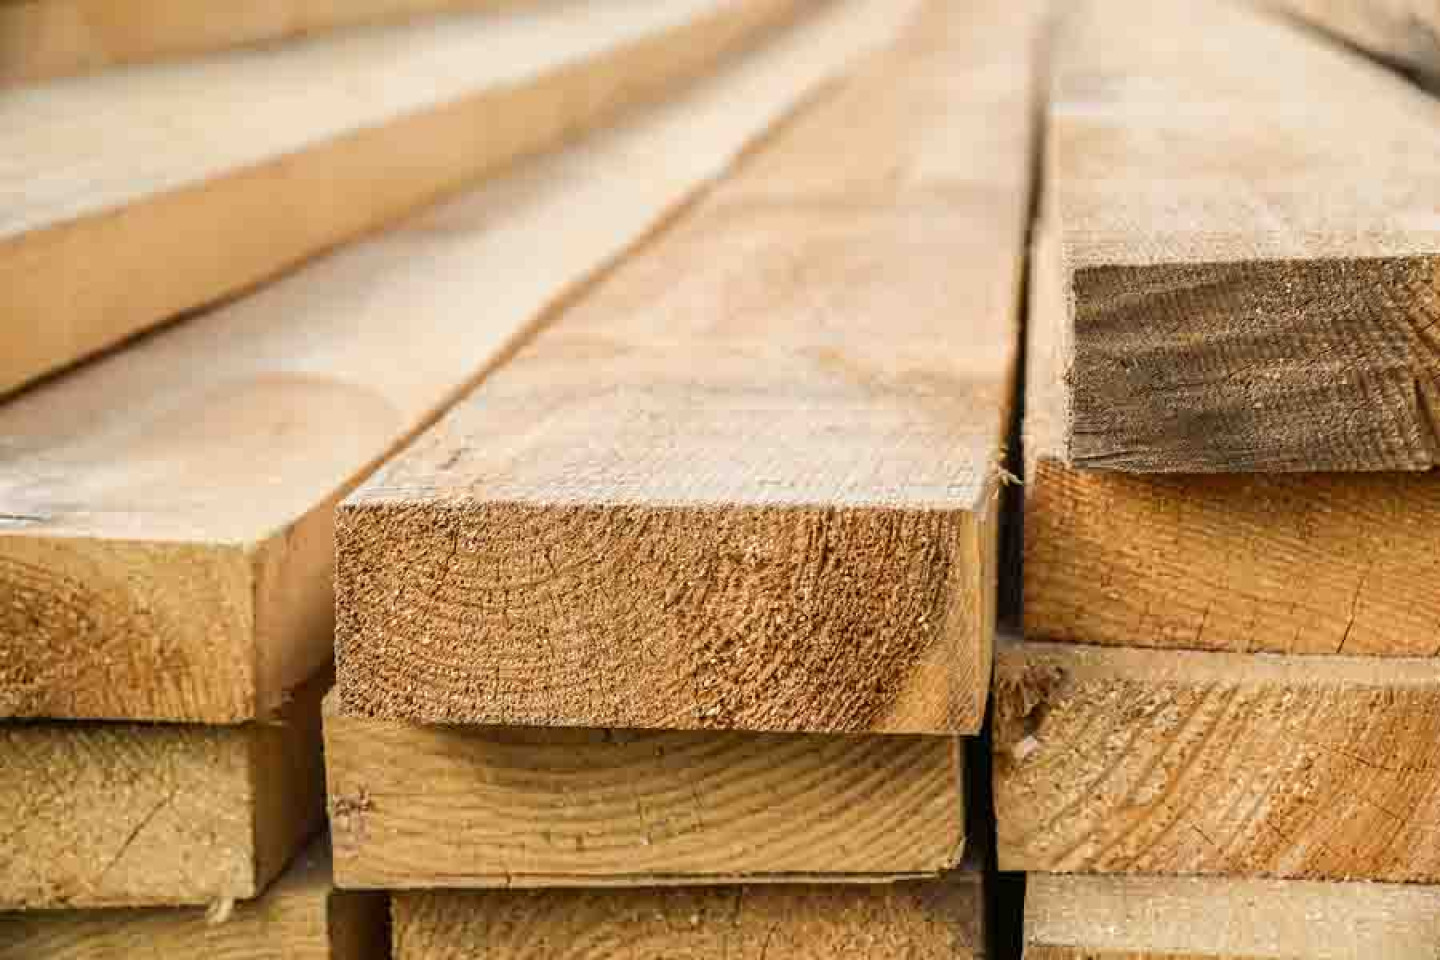 Rely on the local lumber pros